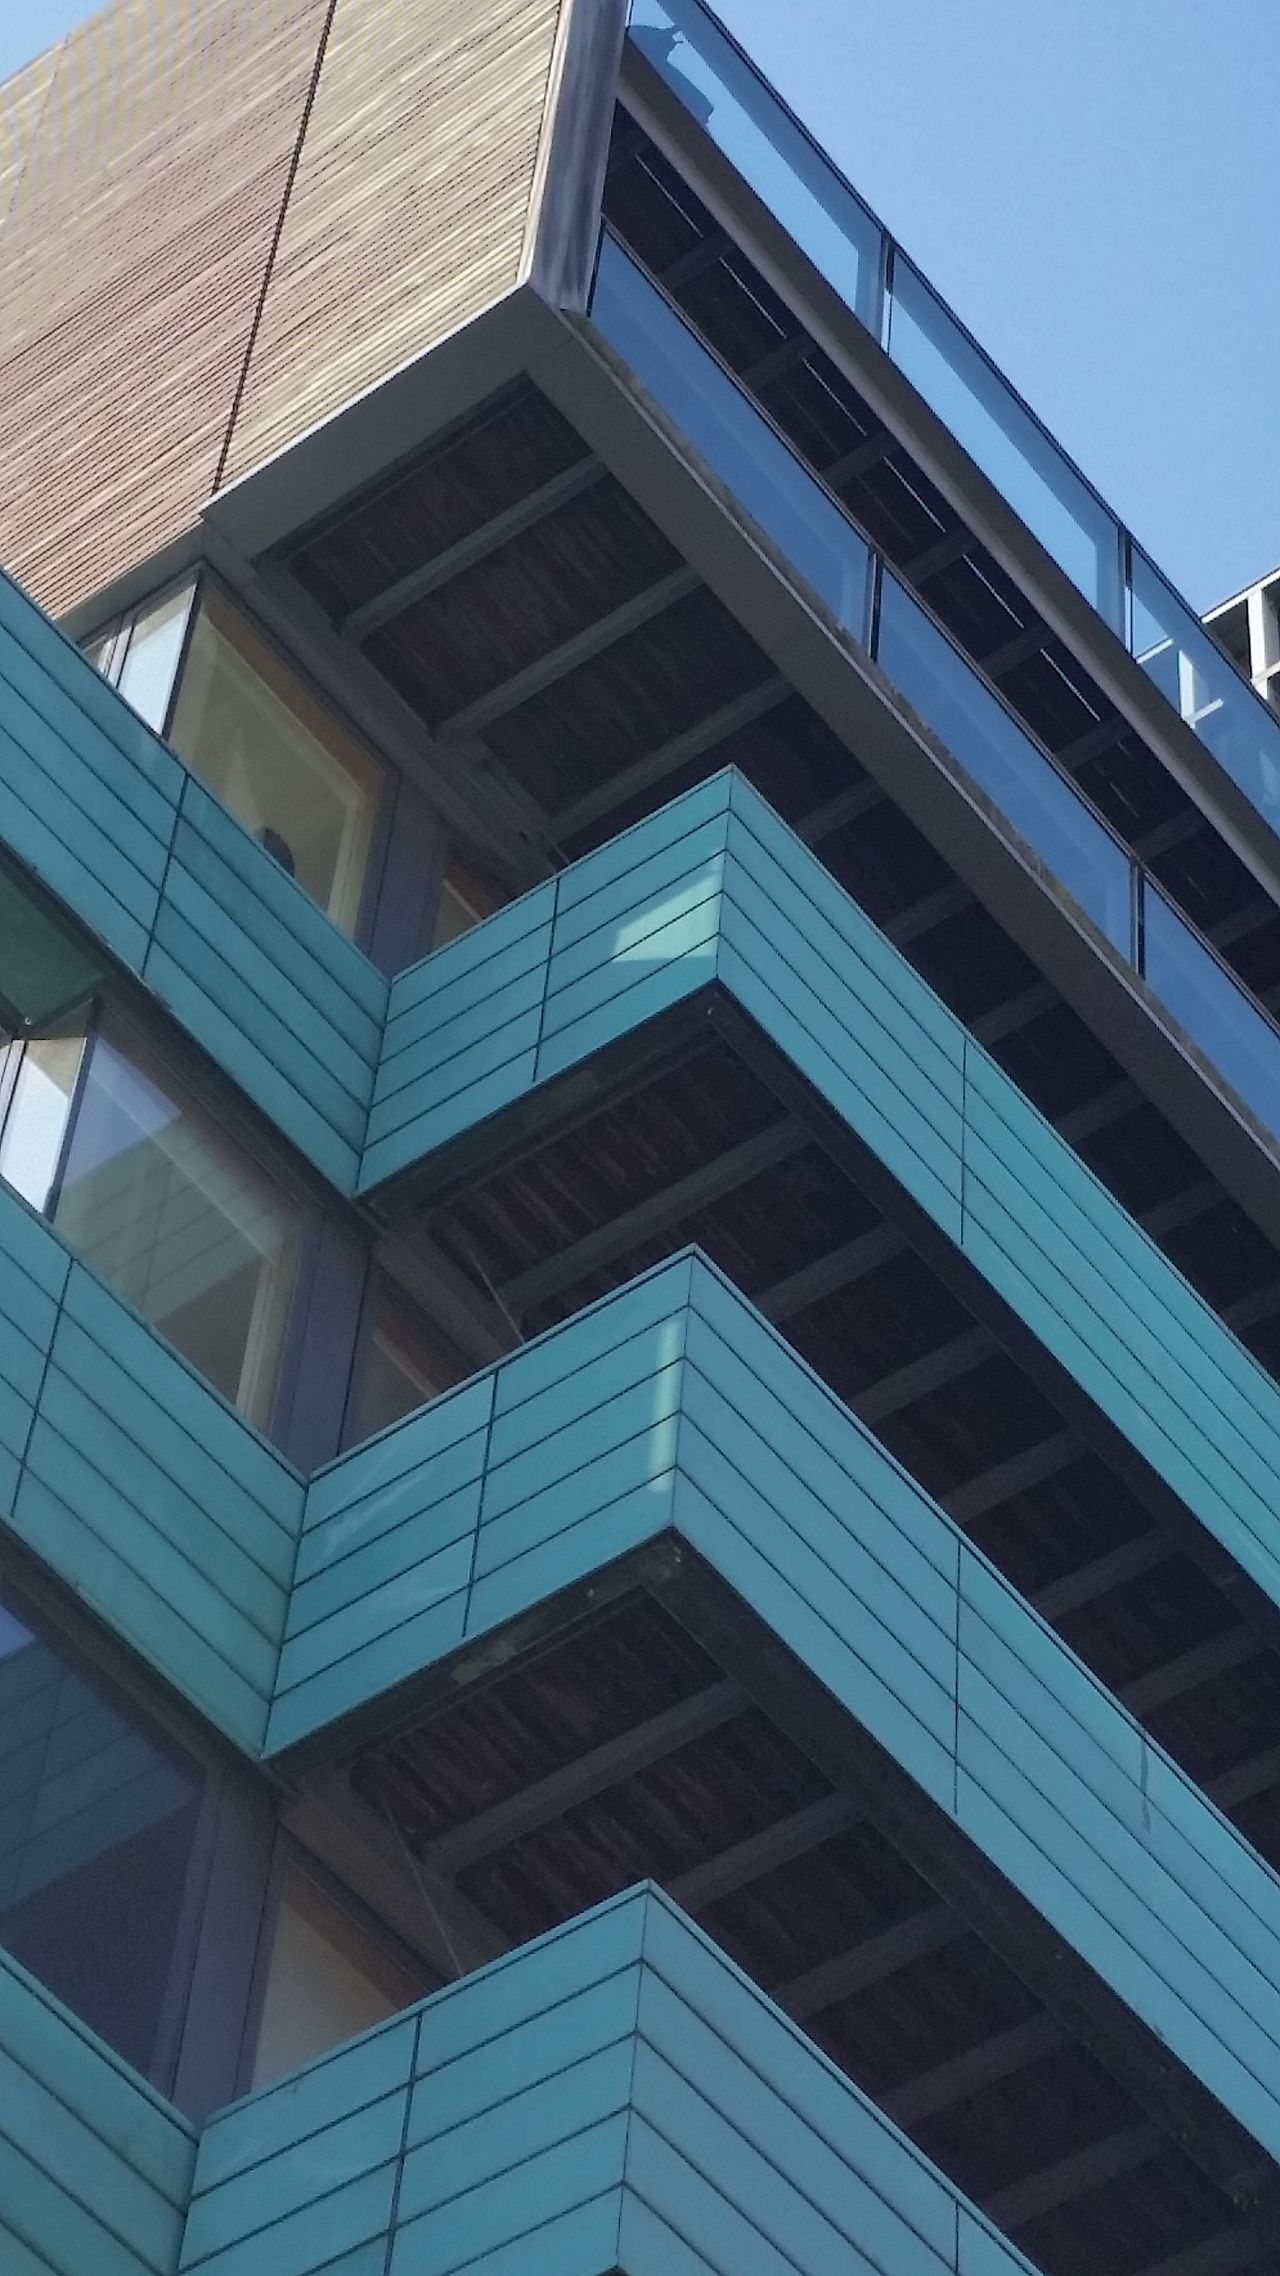 Architecture Building Exterior Sky Blue Hoxton London Lifestyle